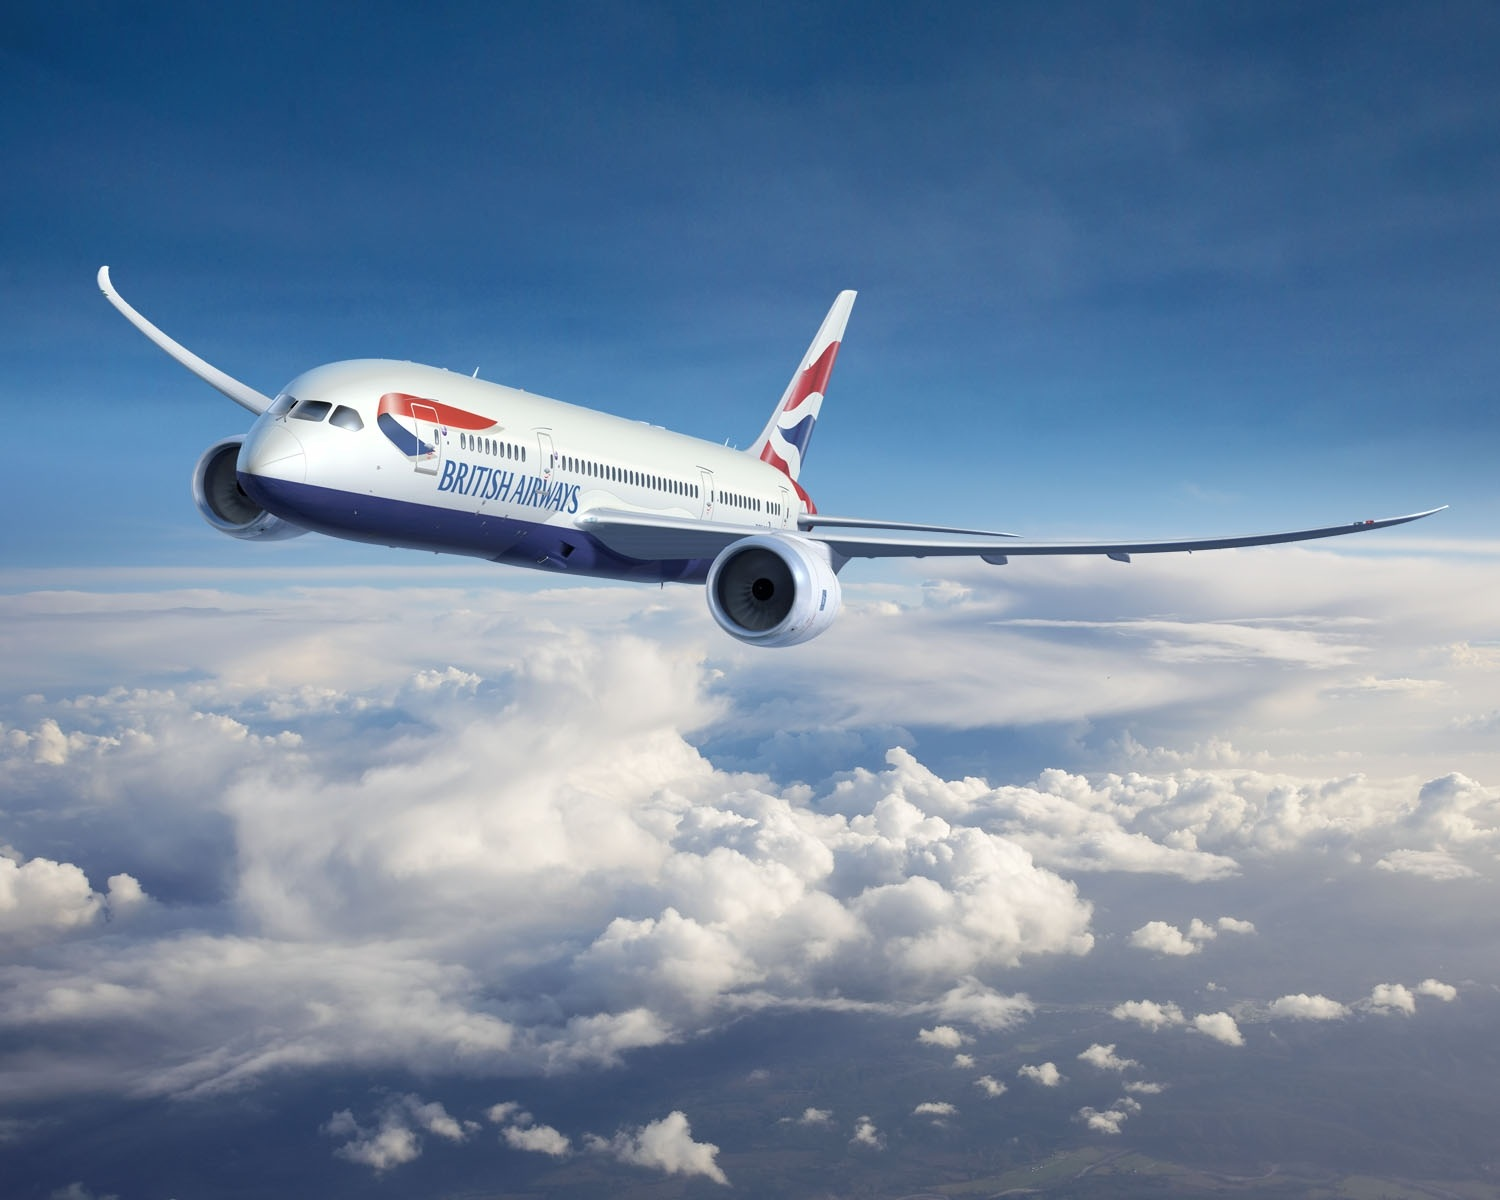 The technology was tested on a Dreamliner service from Heathrow to New York.